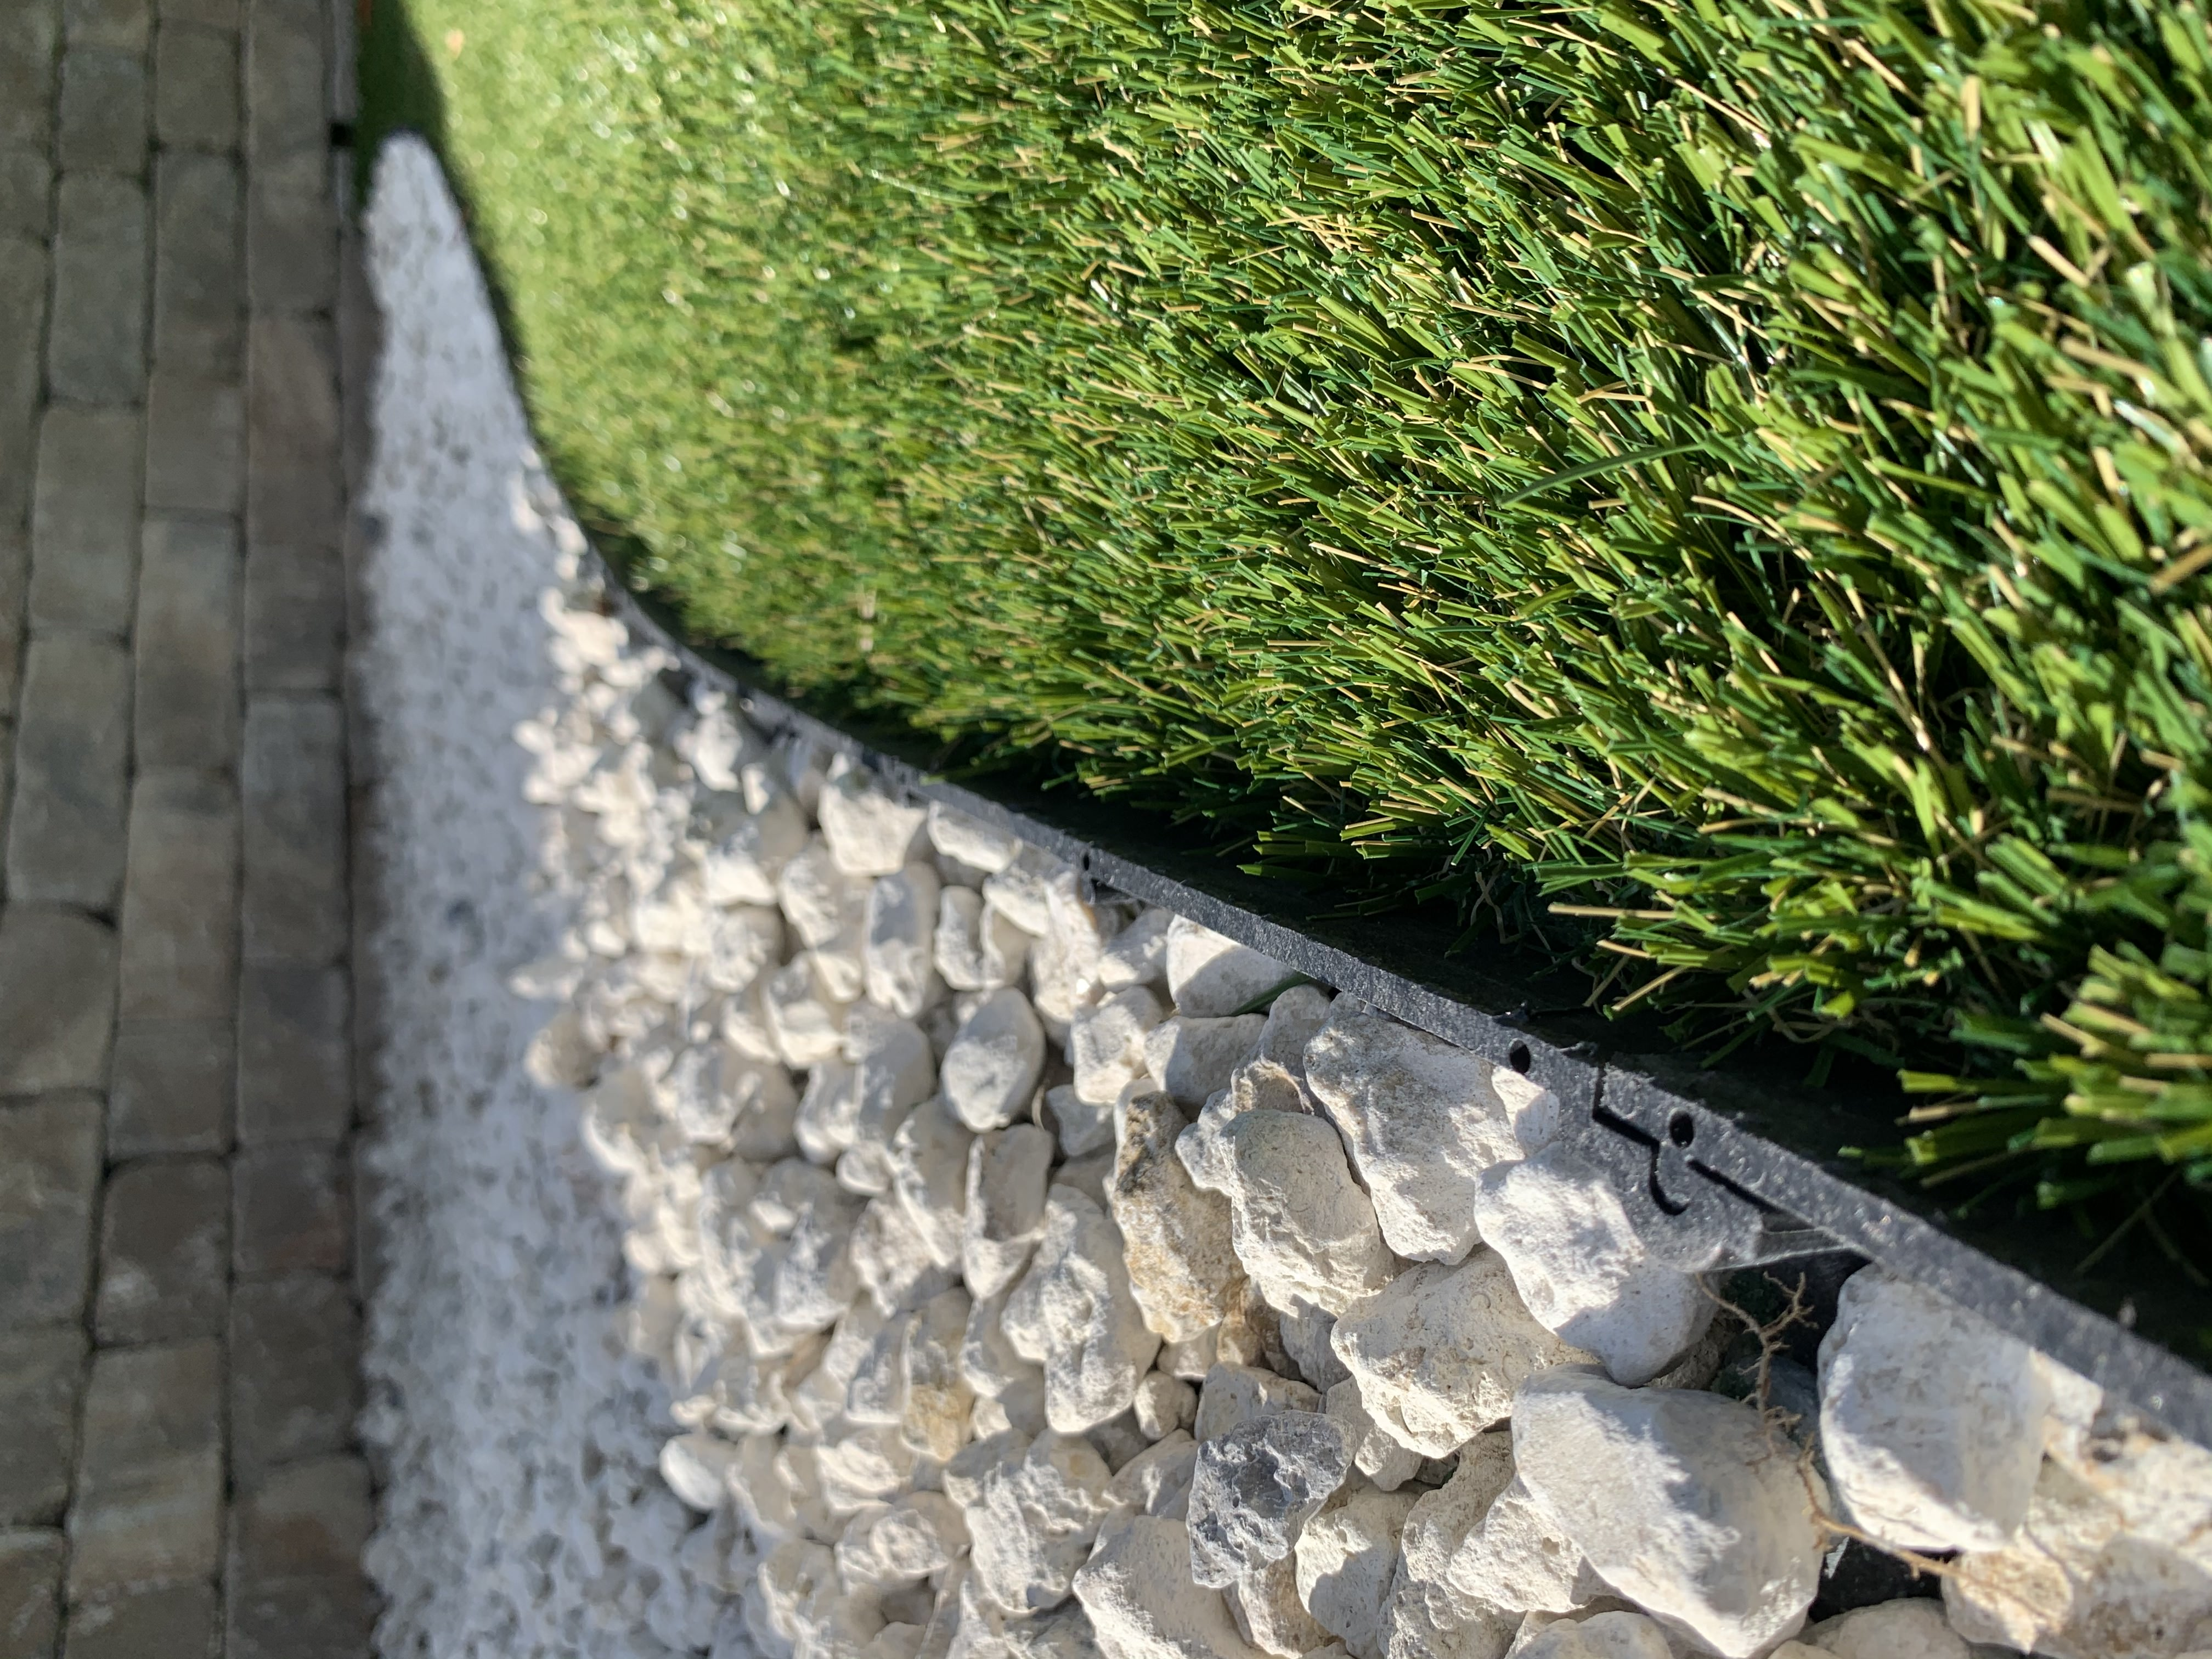 Cool Blue Hollow Lime real grass,most realistic artificial grass,realistic artificial grass,artificial lawn,synthetic lawn,fake lawn,turf lawn,fake grass lawn,artificial turf,synthetic turf,artificial turf installation,how to install artificial turf,used artificial turf